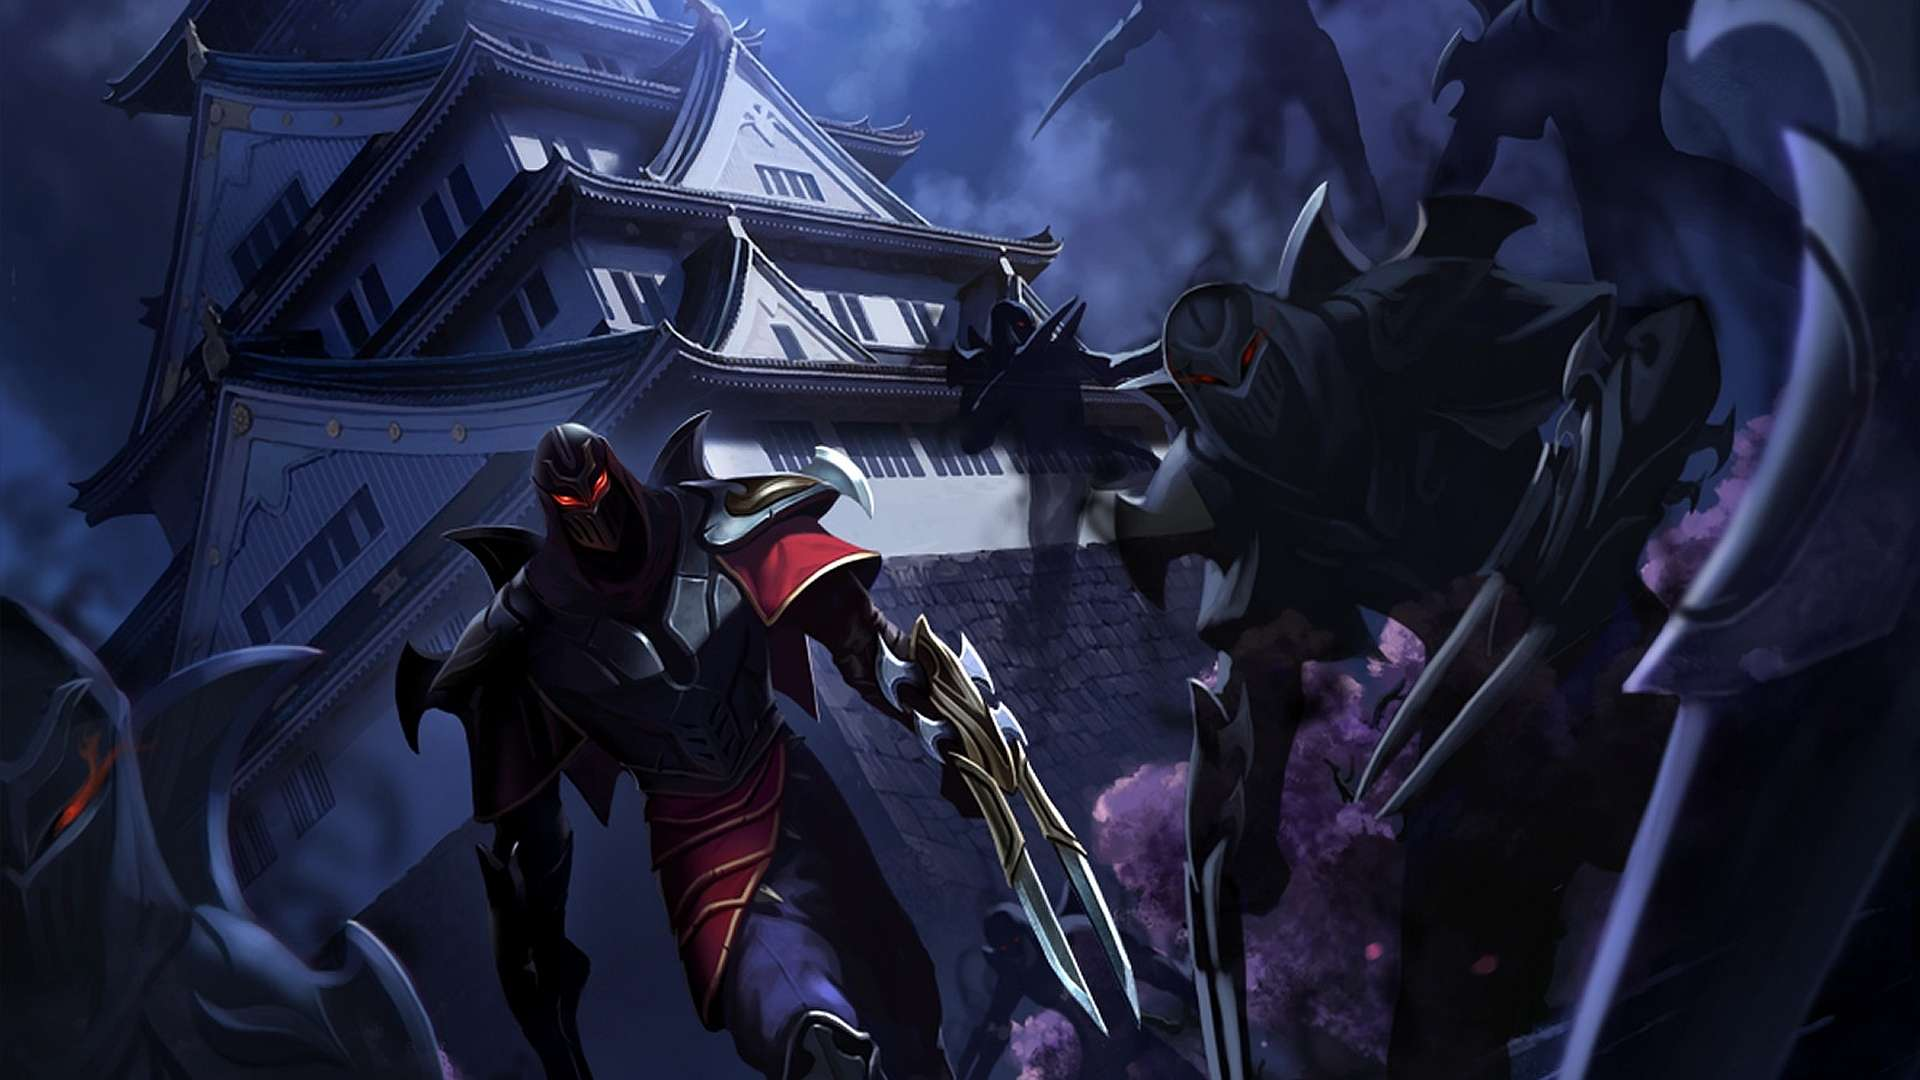 League of Legends Wallpaper 156